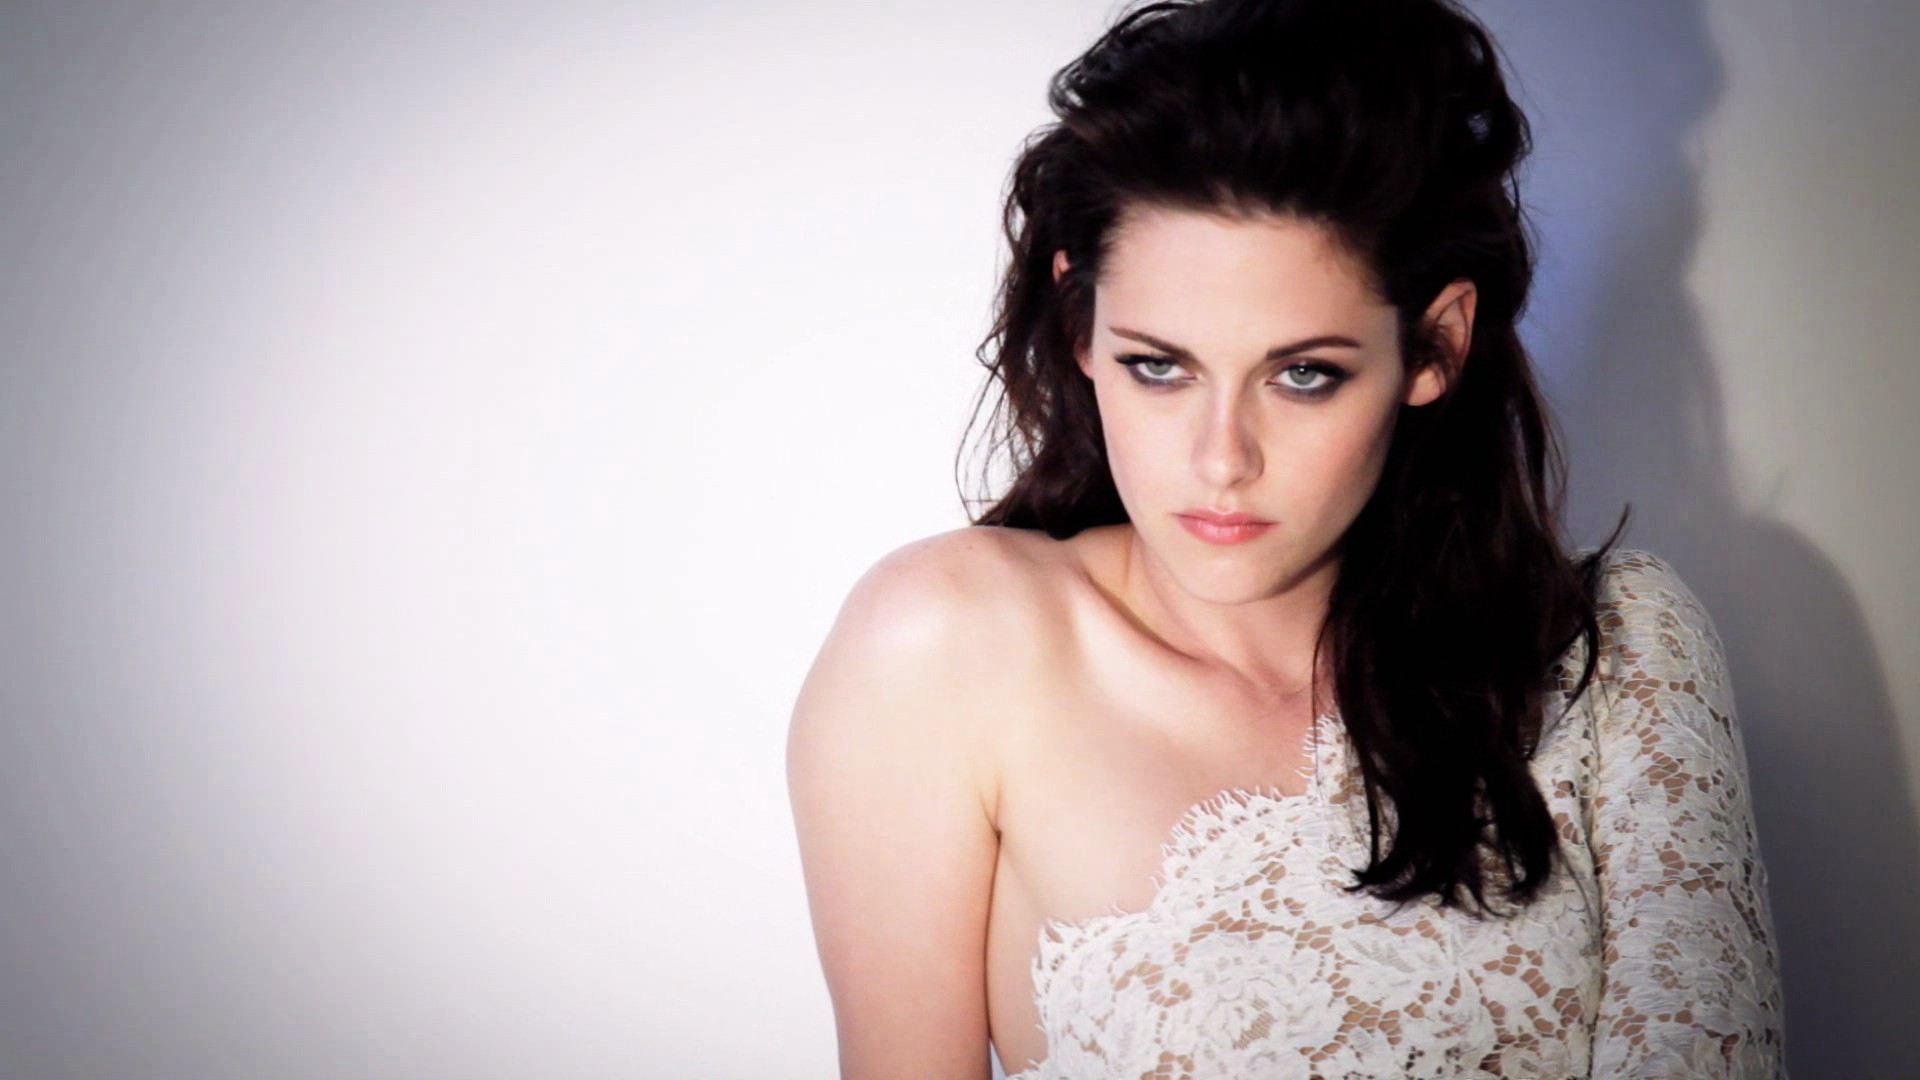 Kristen stewart cute wallpaper